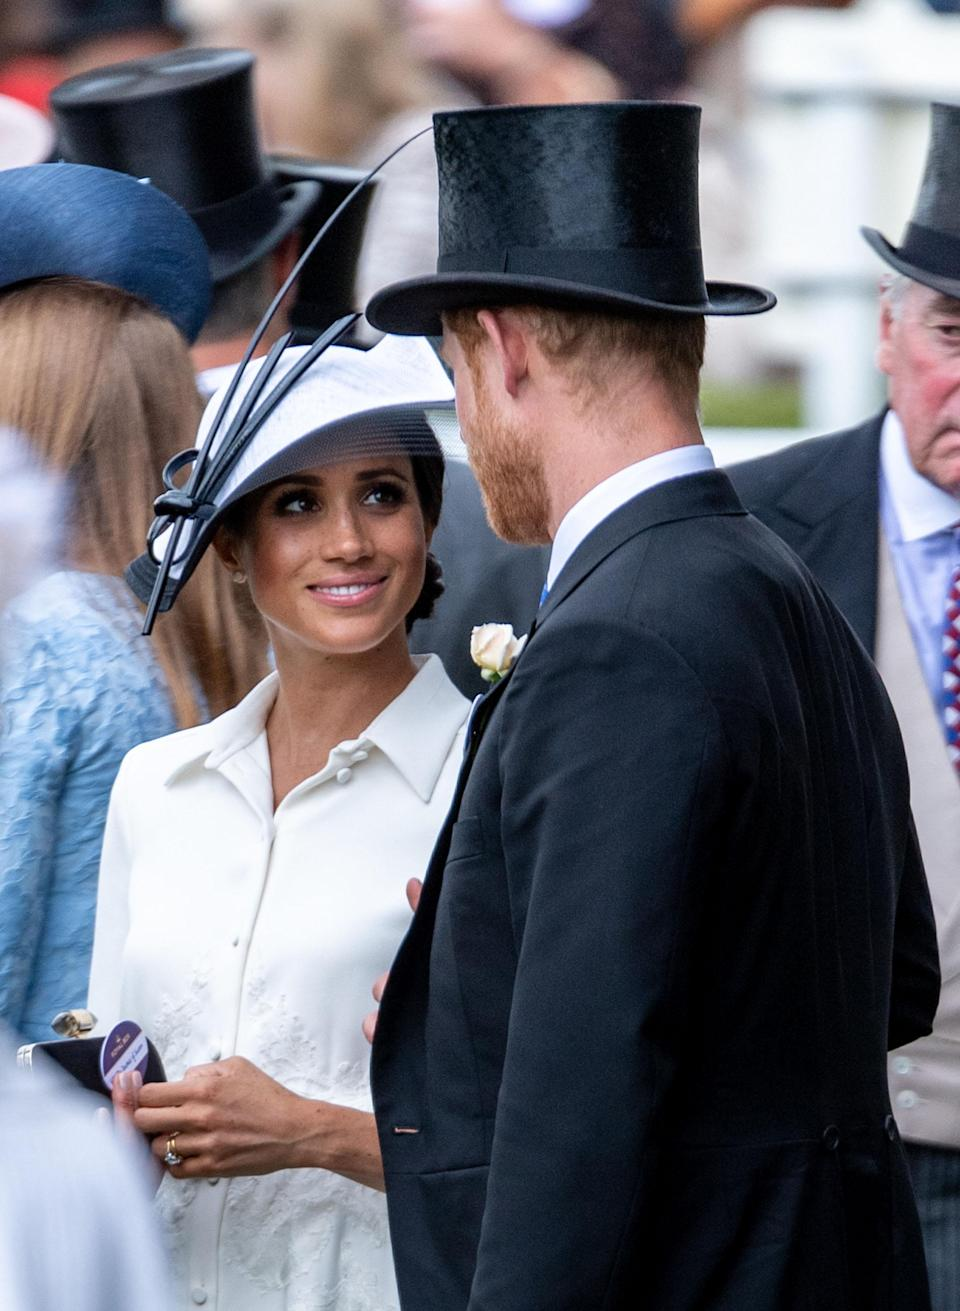 Meghan Markle's Royal Ascot debut was 'understated' to say the least.